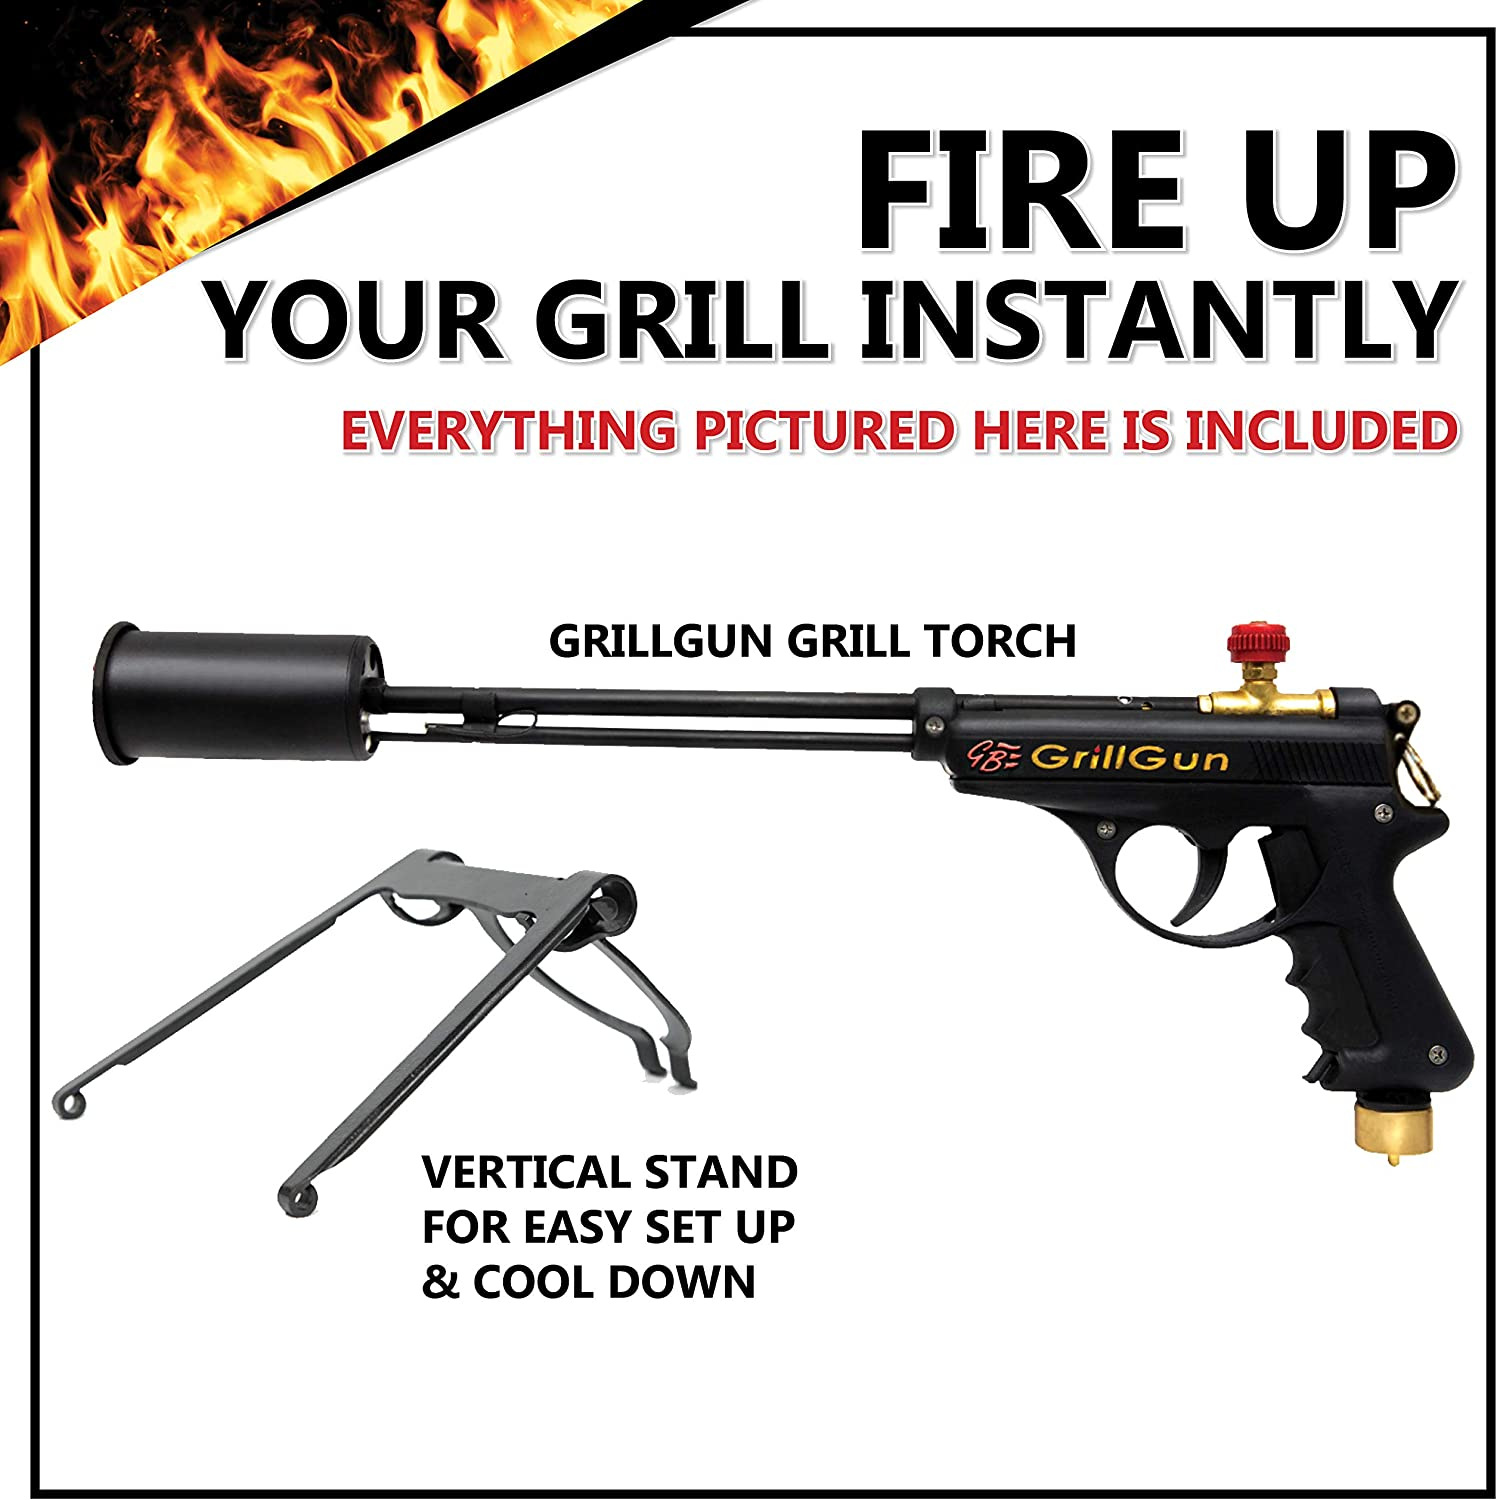 grillblazer GrillGun Basic Grill Torch & Lighter - Charcoal and Wood Starter - Professional Grilling and BBQ Handheld Blowtorch for Chefs, Men and Women Who Want to Have The Best Tool for The Job : Garden & Outdoor